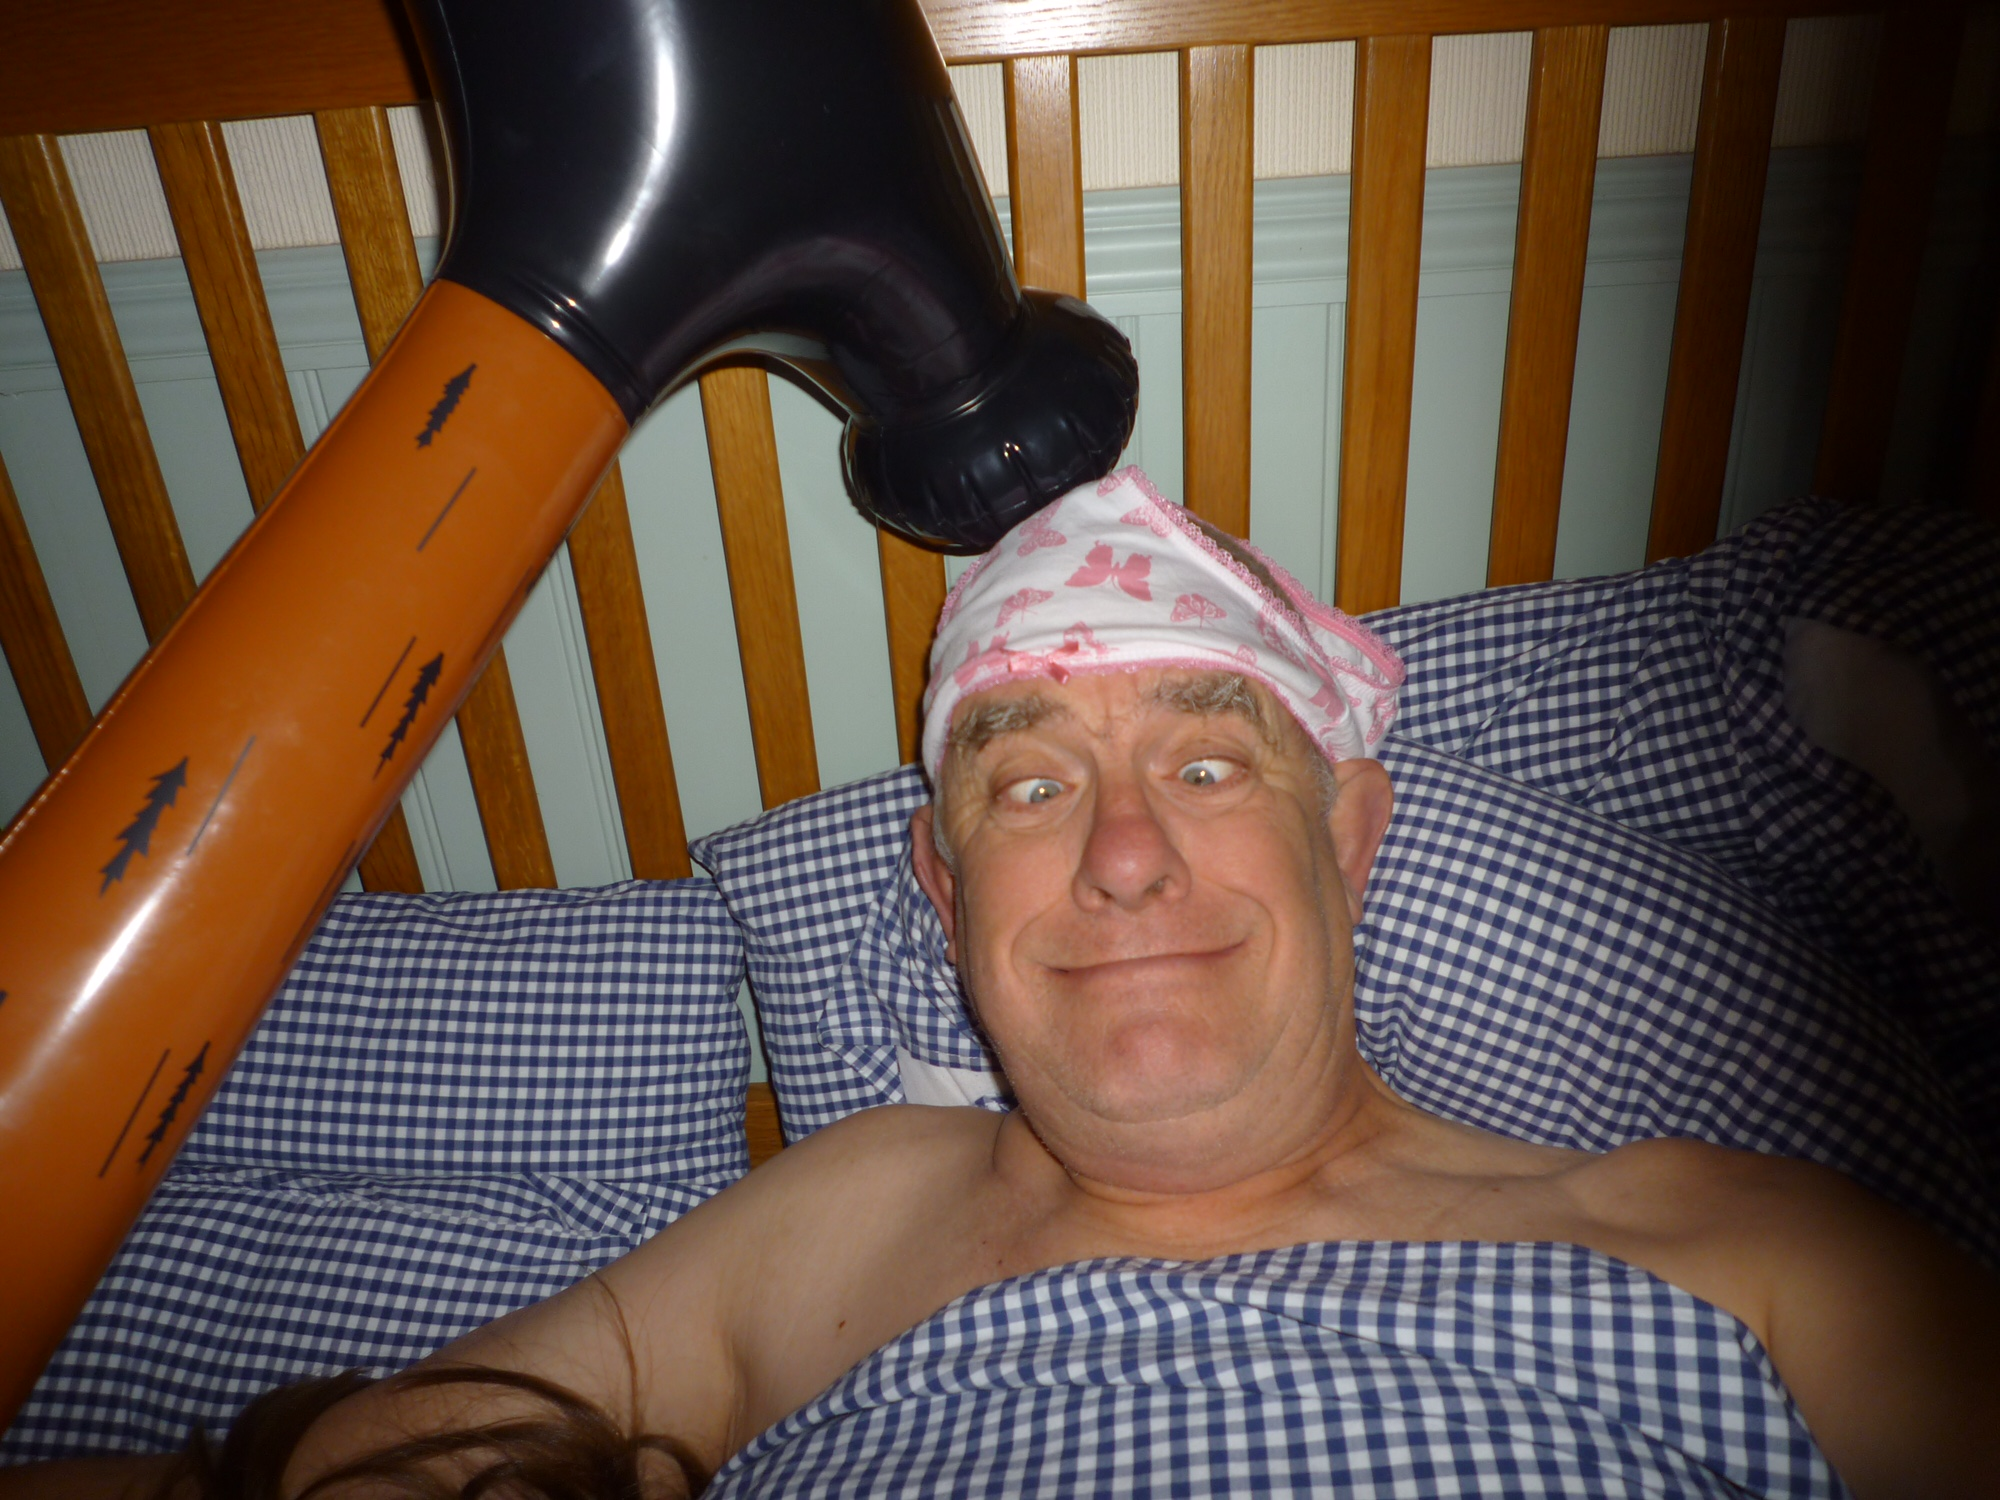 GAD. Generalised Anxiety Disorder: Bobby in bed, with bandaged head and an inflatable hammer over it!